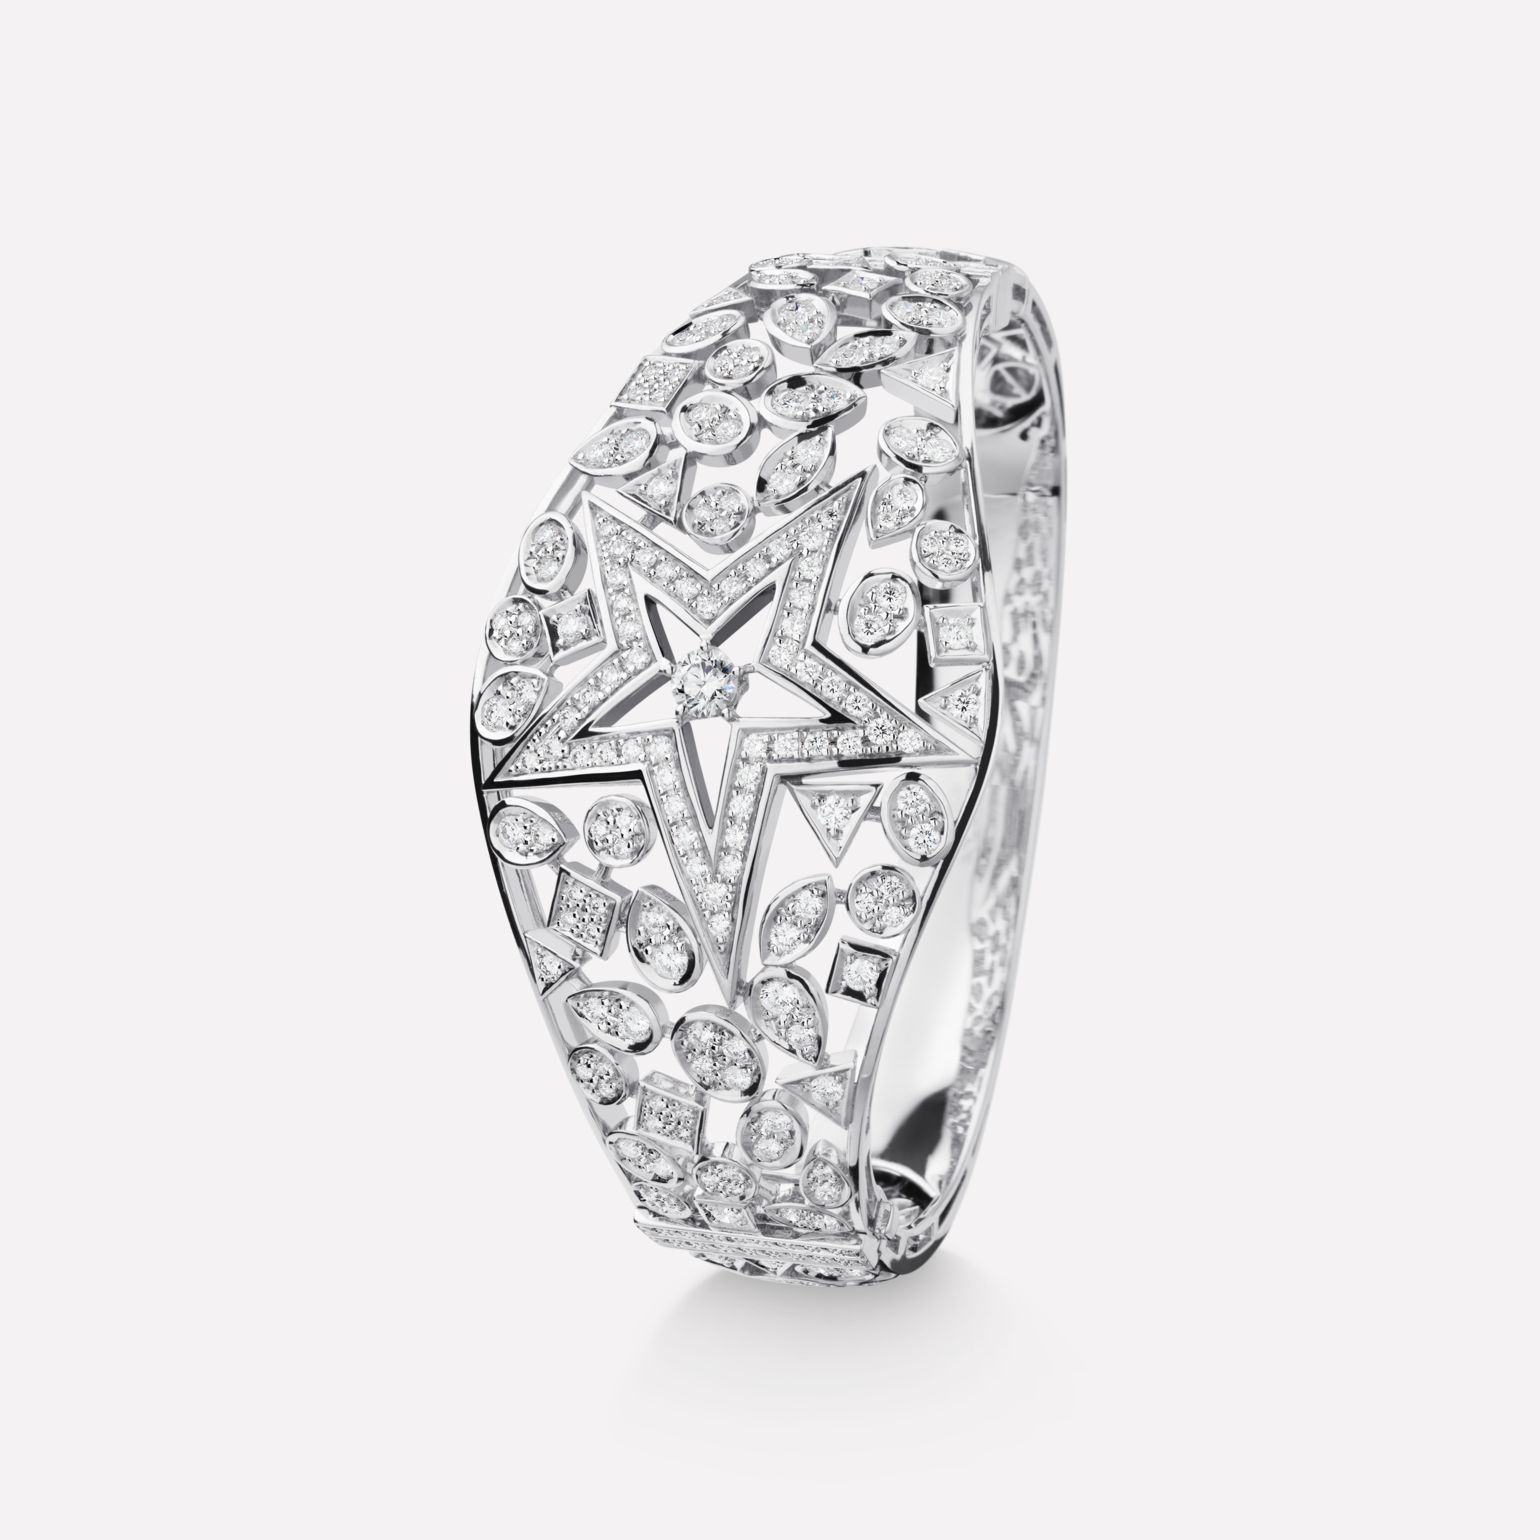 Comète Bracelet Star cuff in 18K white gold, diamonds and central diamond